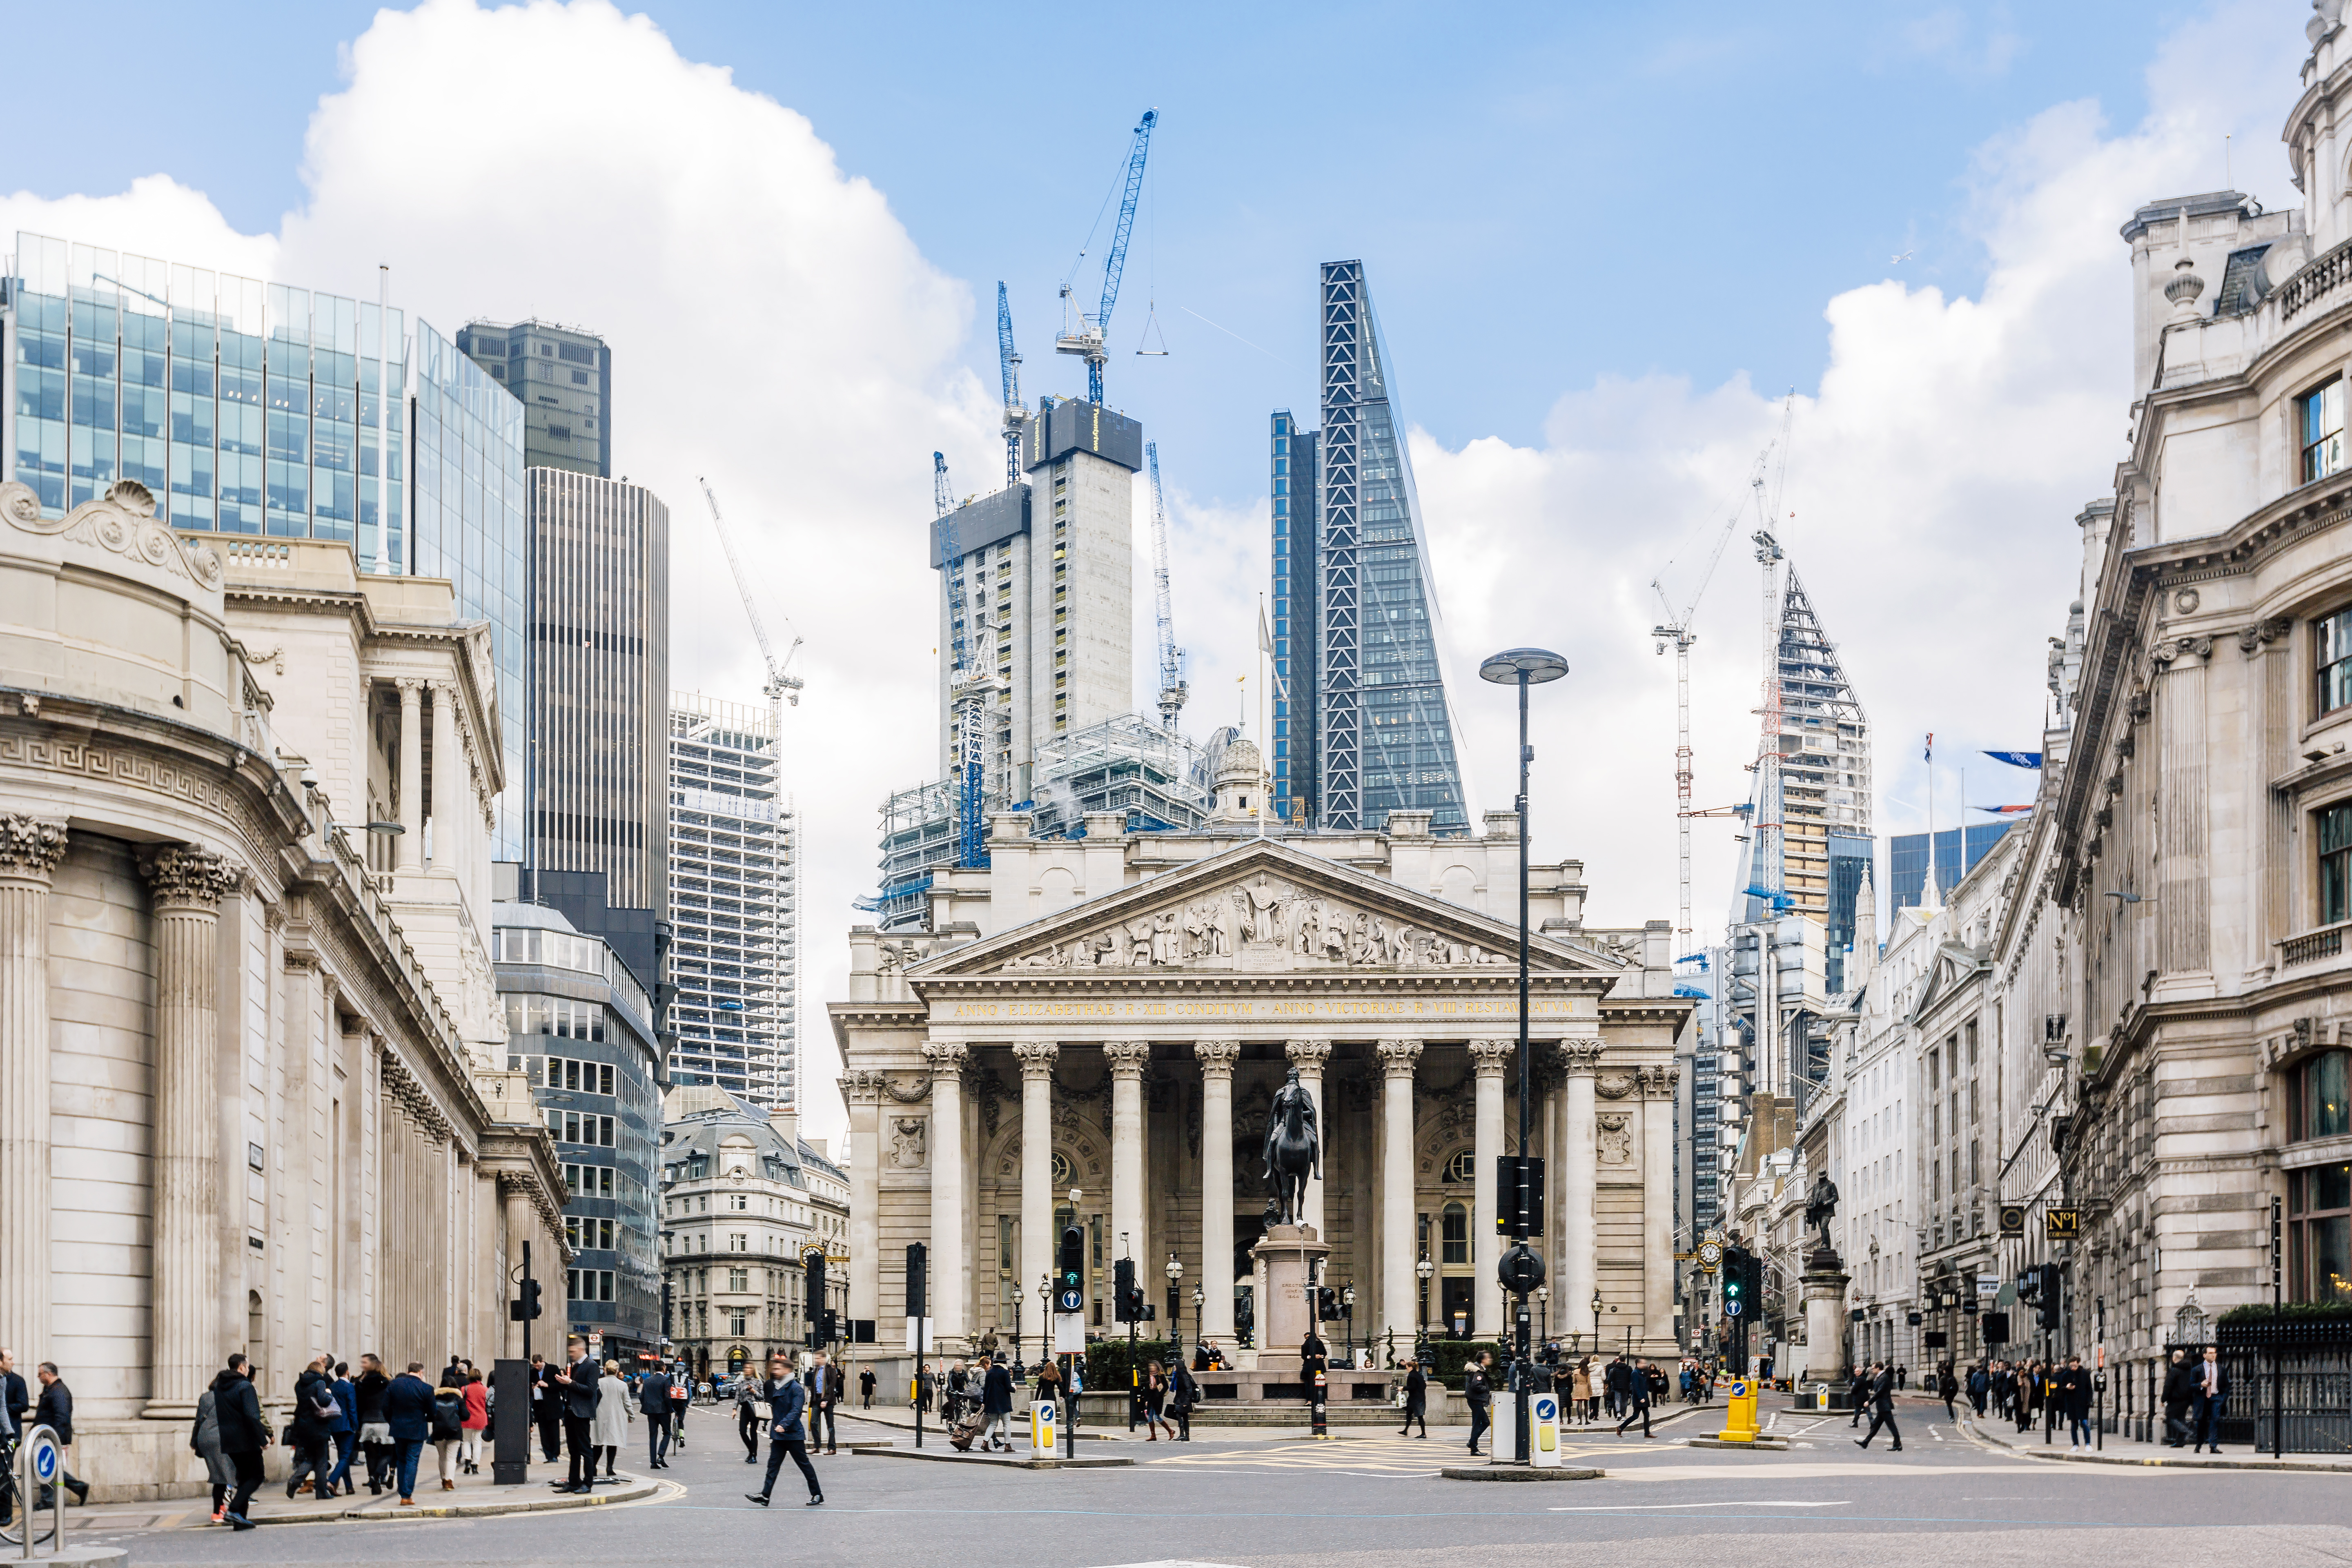 A street in London. There are various buildings lining the street. At the end of the street is a historic building with a domed roof and columns.